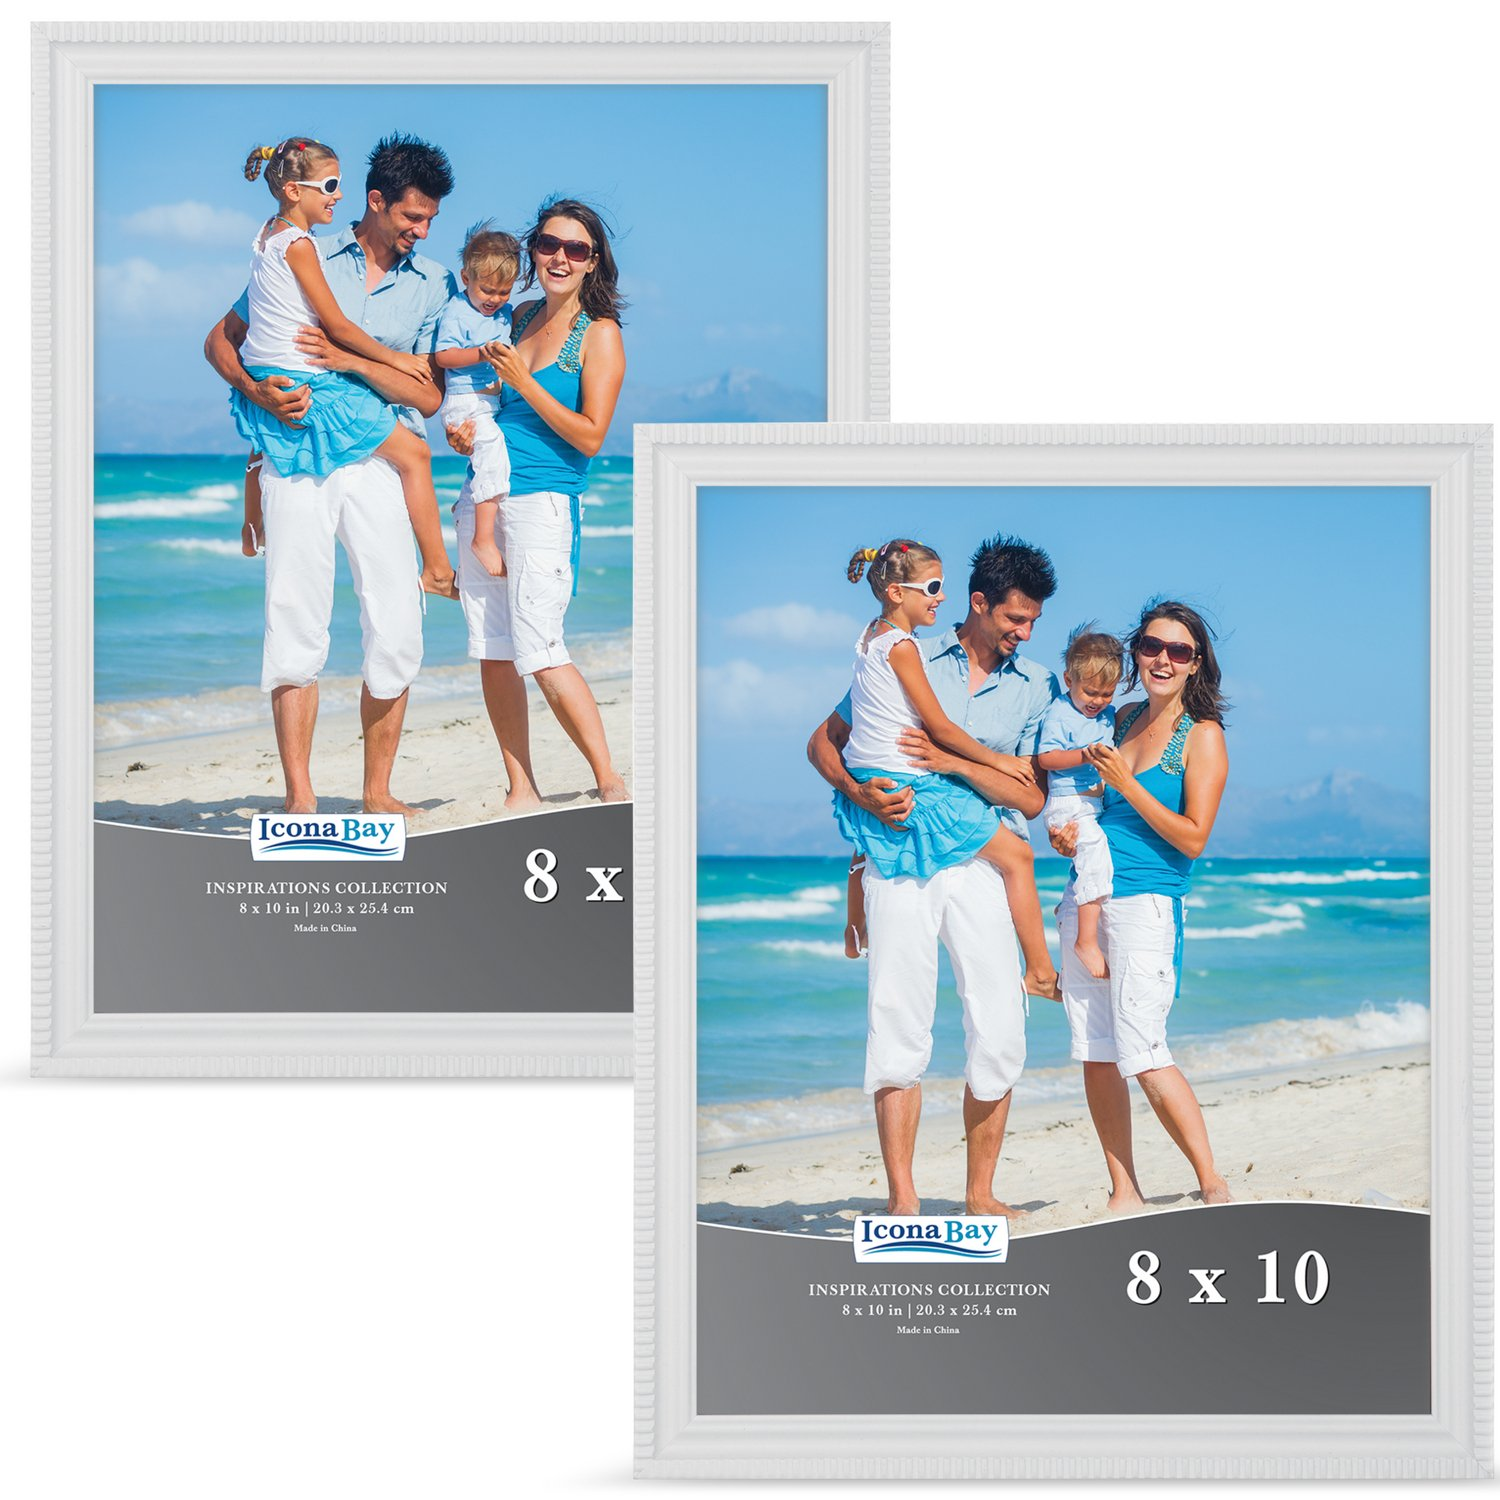 Icona Bay 8x10 Picture Frame Set (Set of 2), White Frame, Photo Frame Set for Wall or Table Top, Photo Frames 8x10 Set, Inspirations Collection